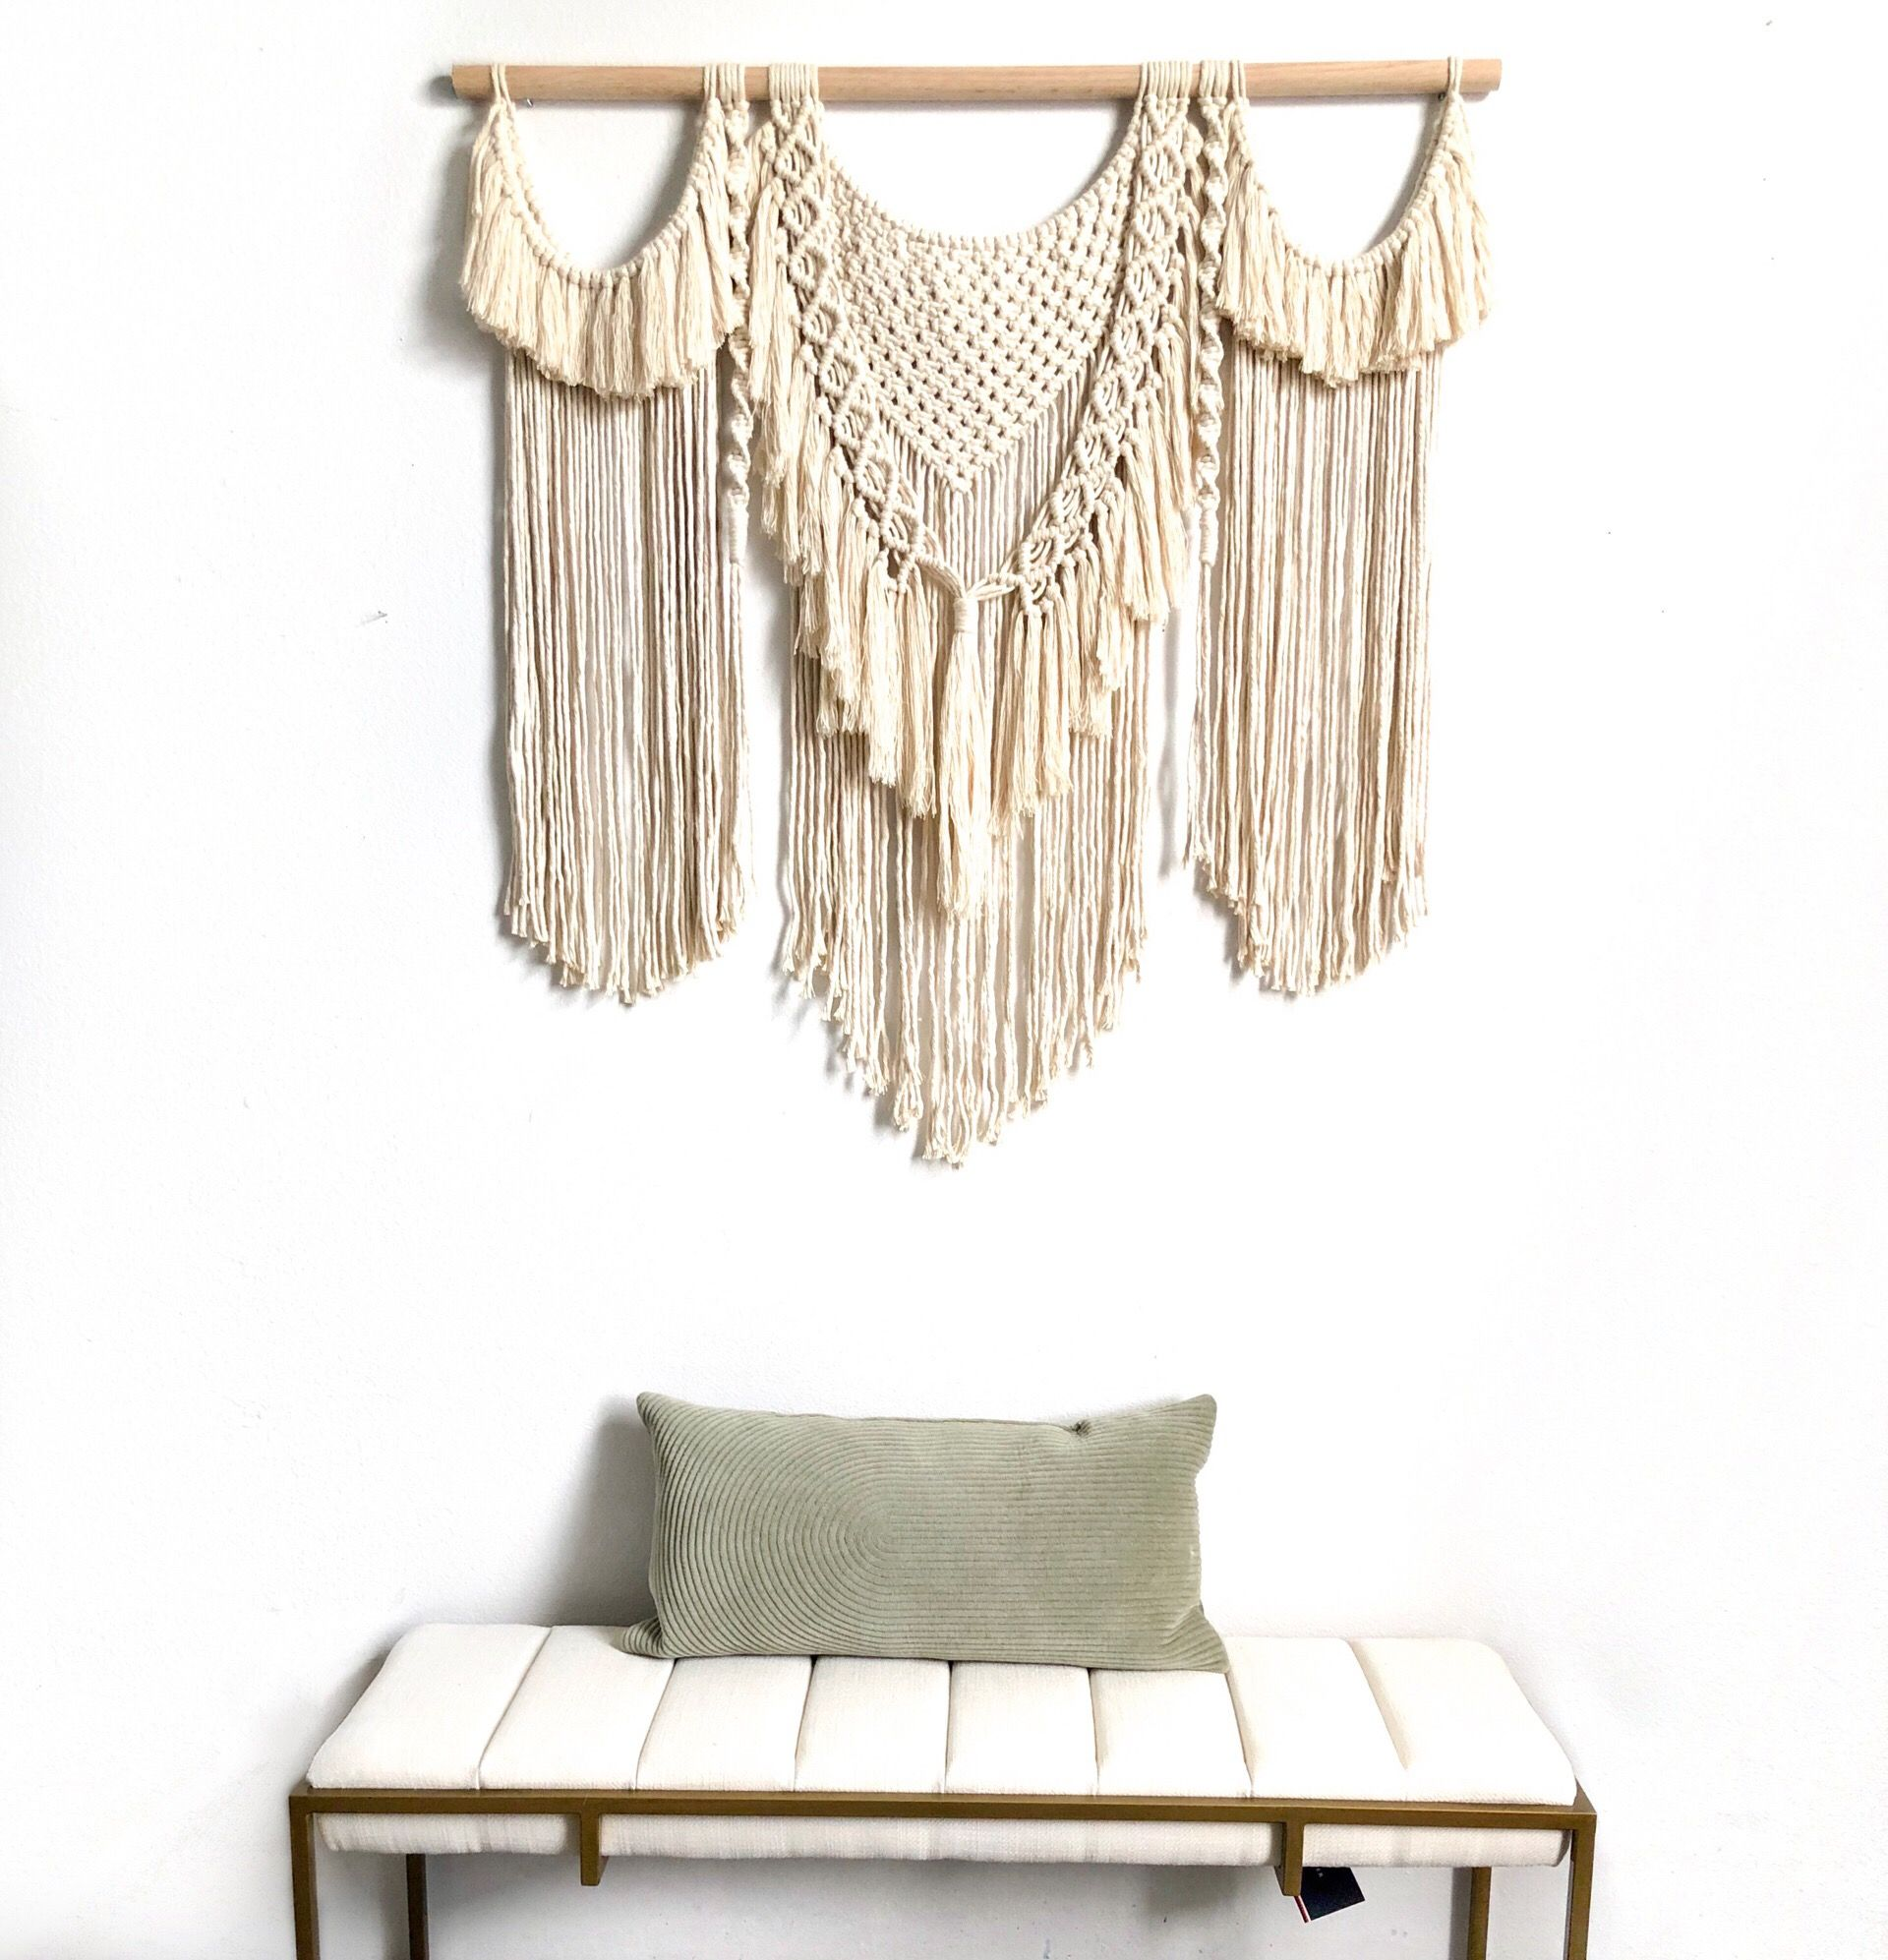 Large Handmade Macrame Wall Hanging For A Boho Mid Century Modern Interior Handmade Wall Handmade Wall Decor Large Macrame Wall Hanging Macrame Wall Hanging